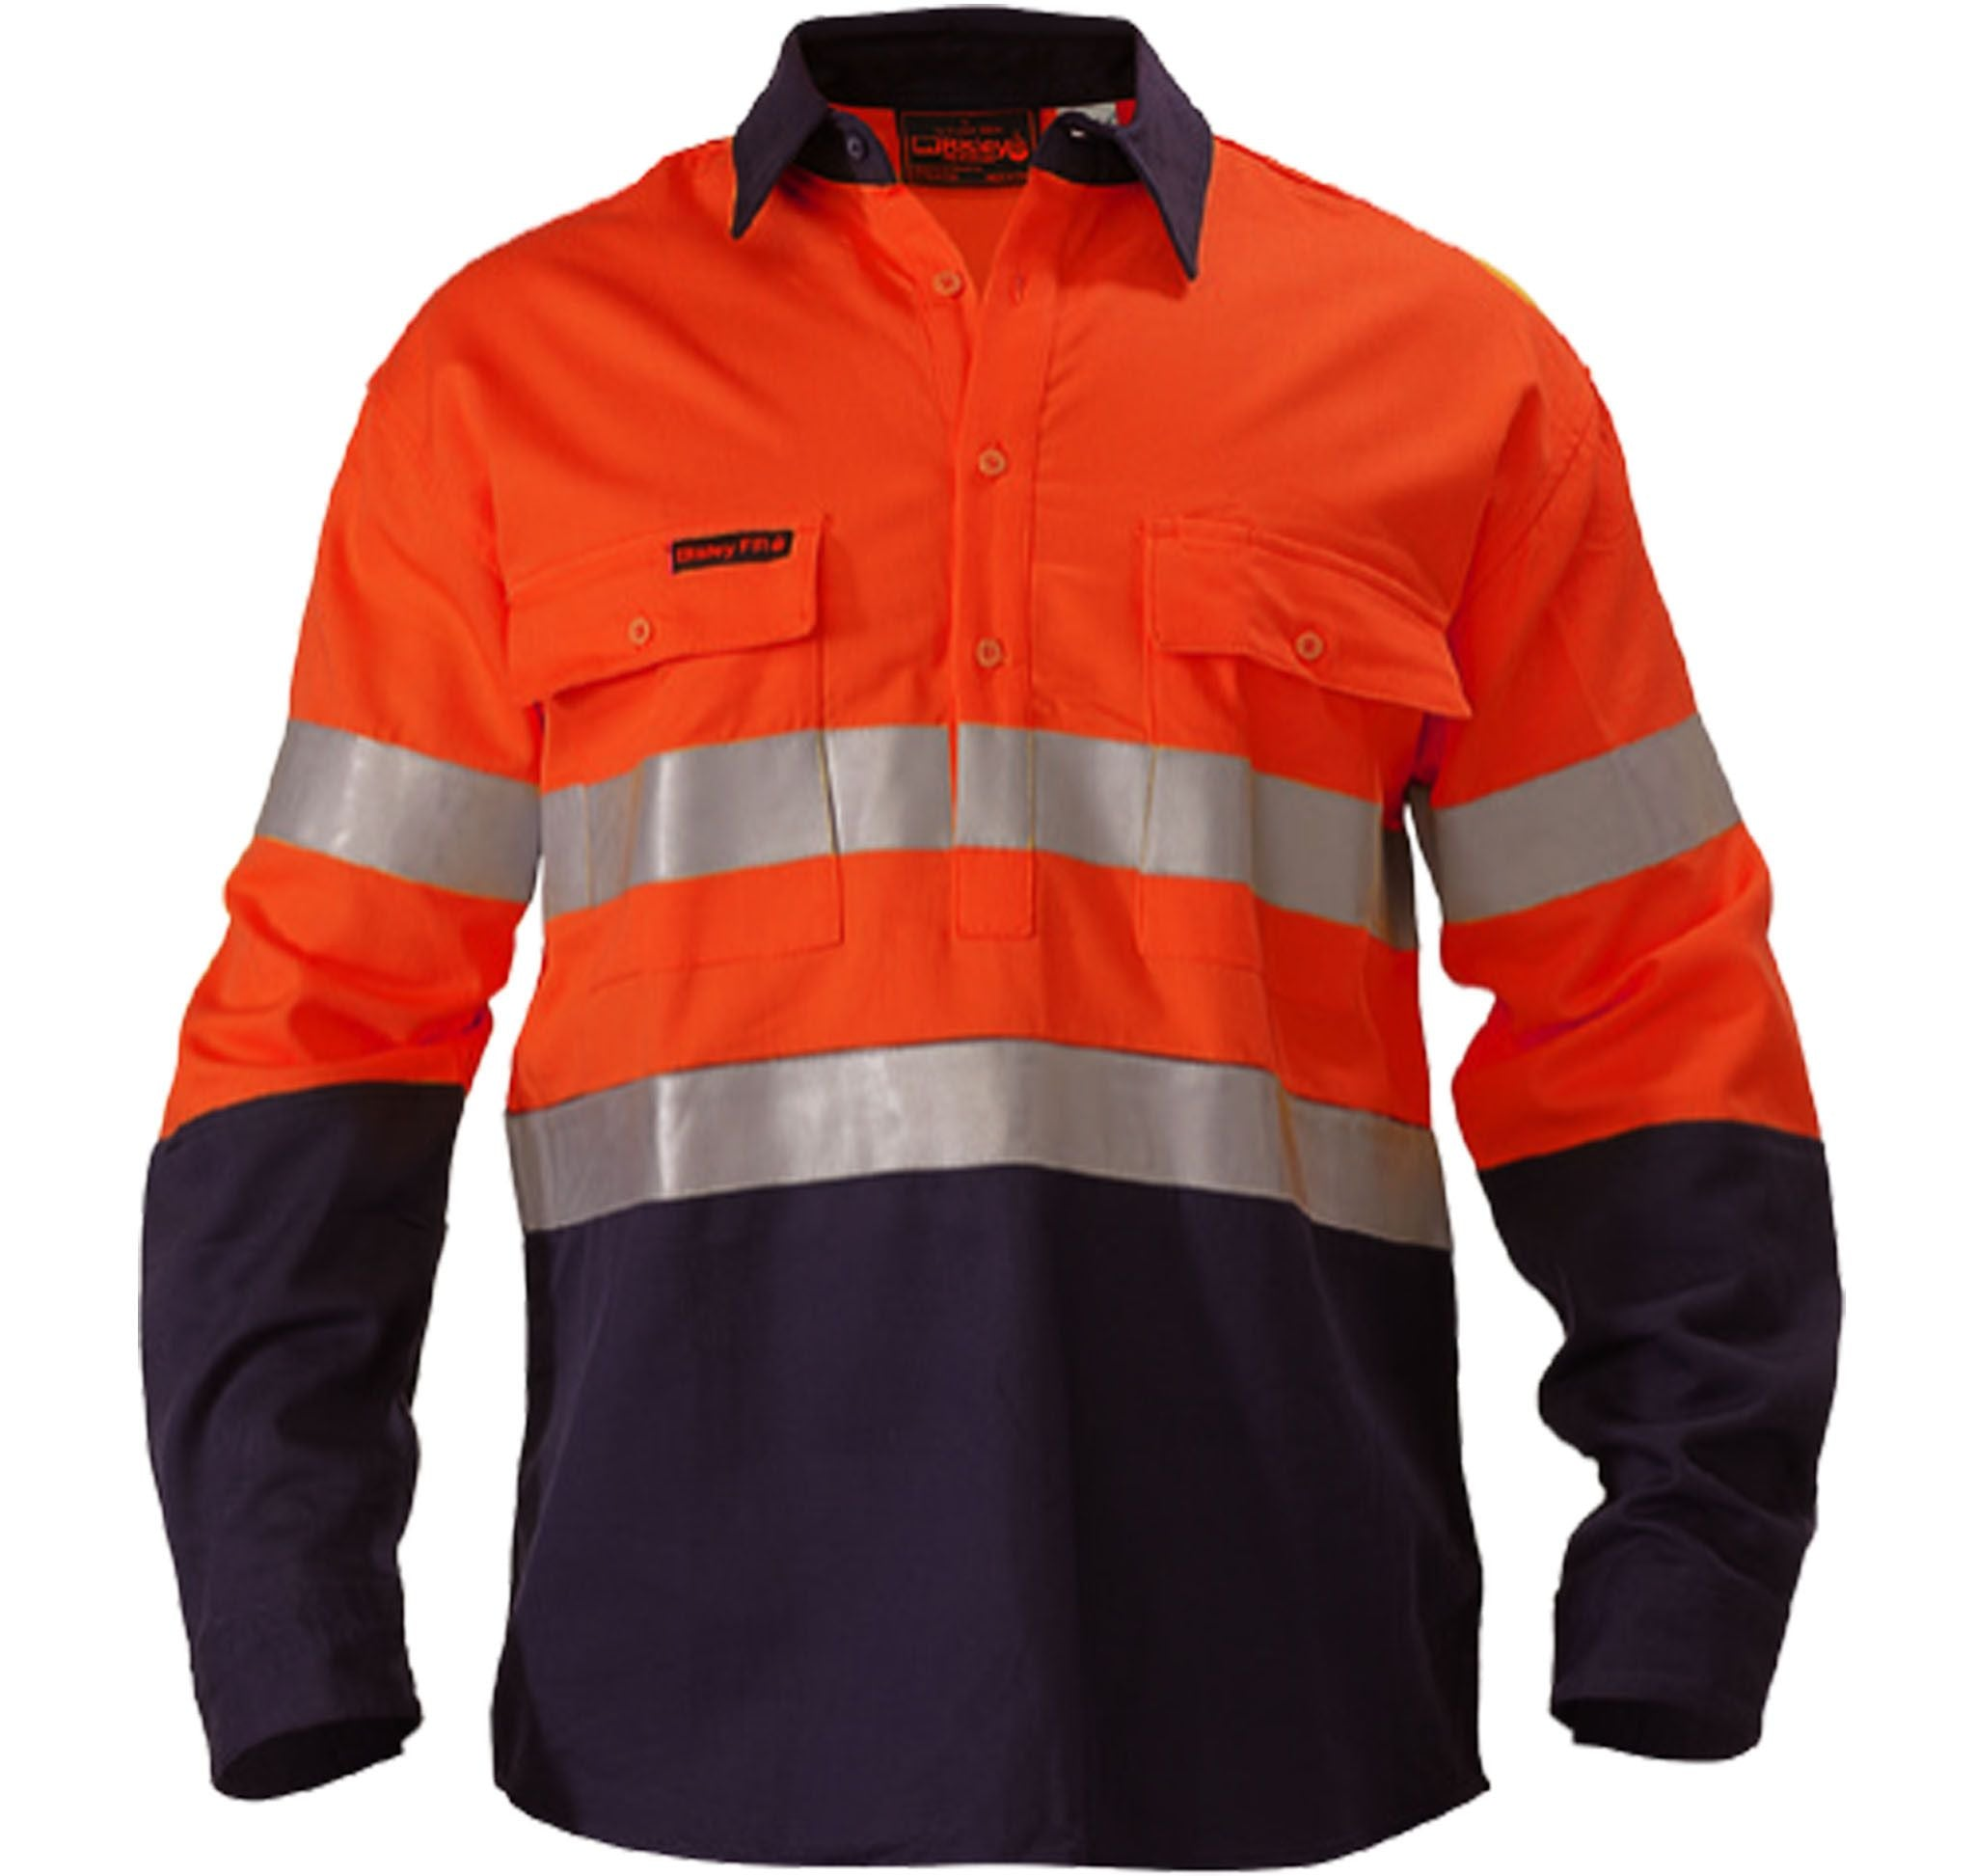 Bisley Indura® Ultra Soft® Fire Retardant 2 Tone Hi Vis Drill Shirt 3M FR Reflective Tape - Long Sleeve-(BS8002)